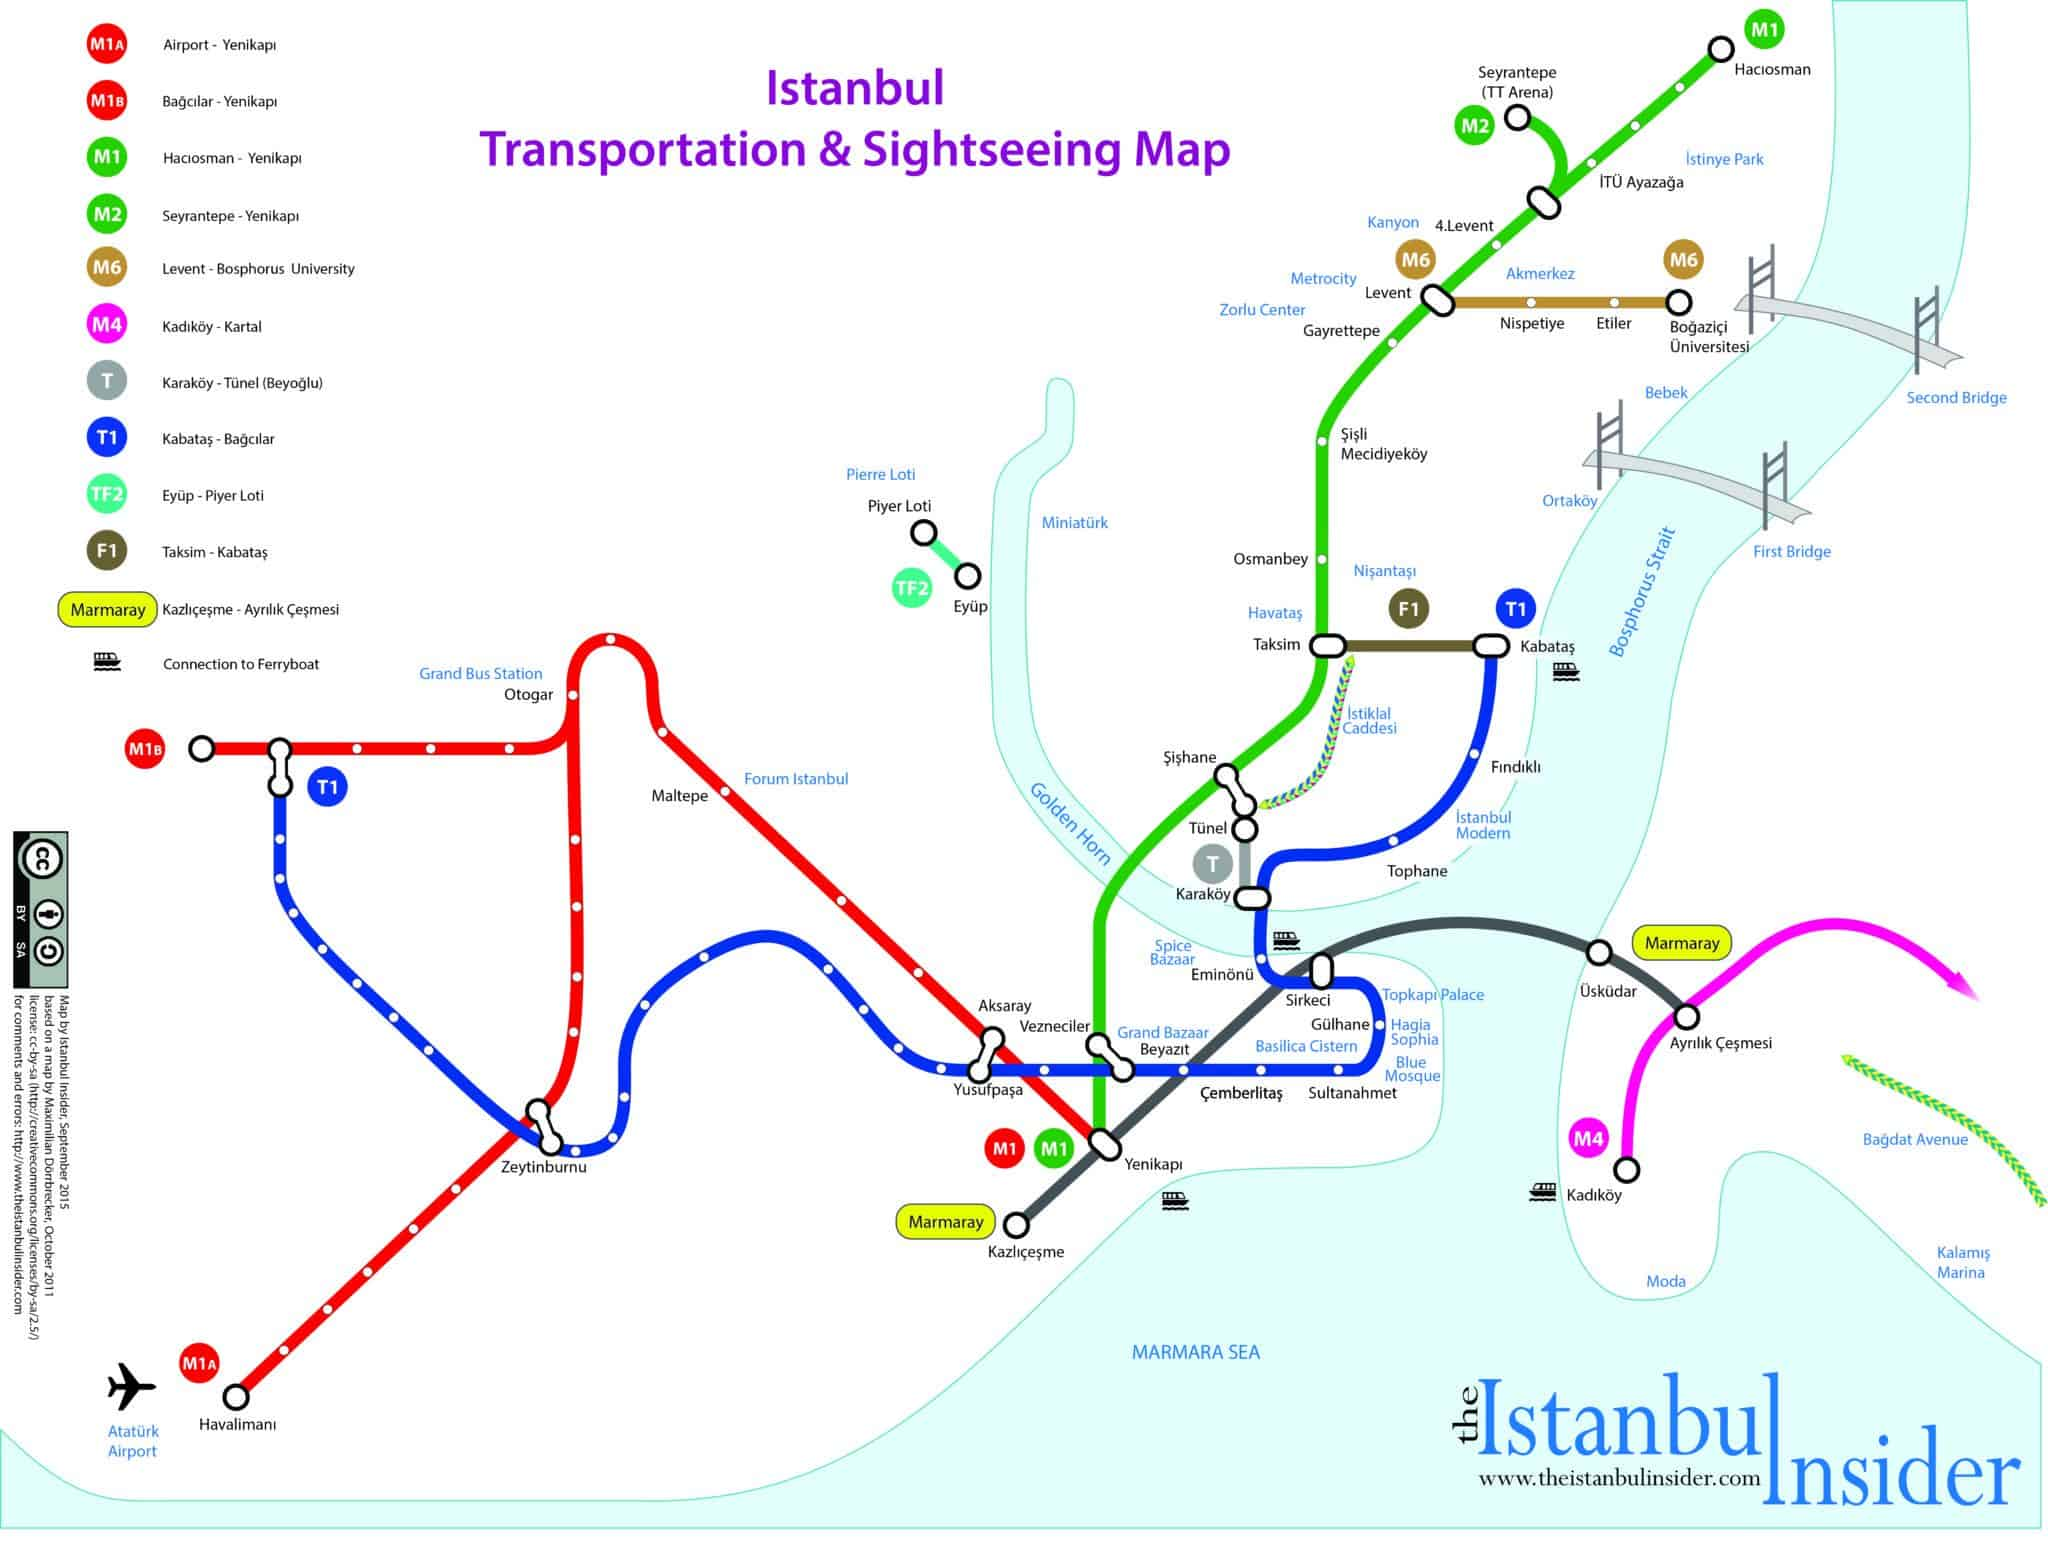 Istanbul Subway Map 2015.Istanbul Transportation Map With Places Of Interest Istanbul Insider